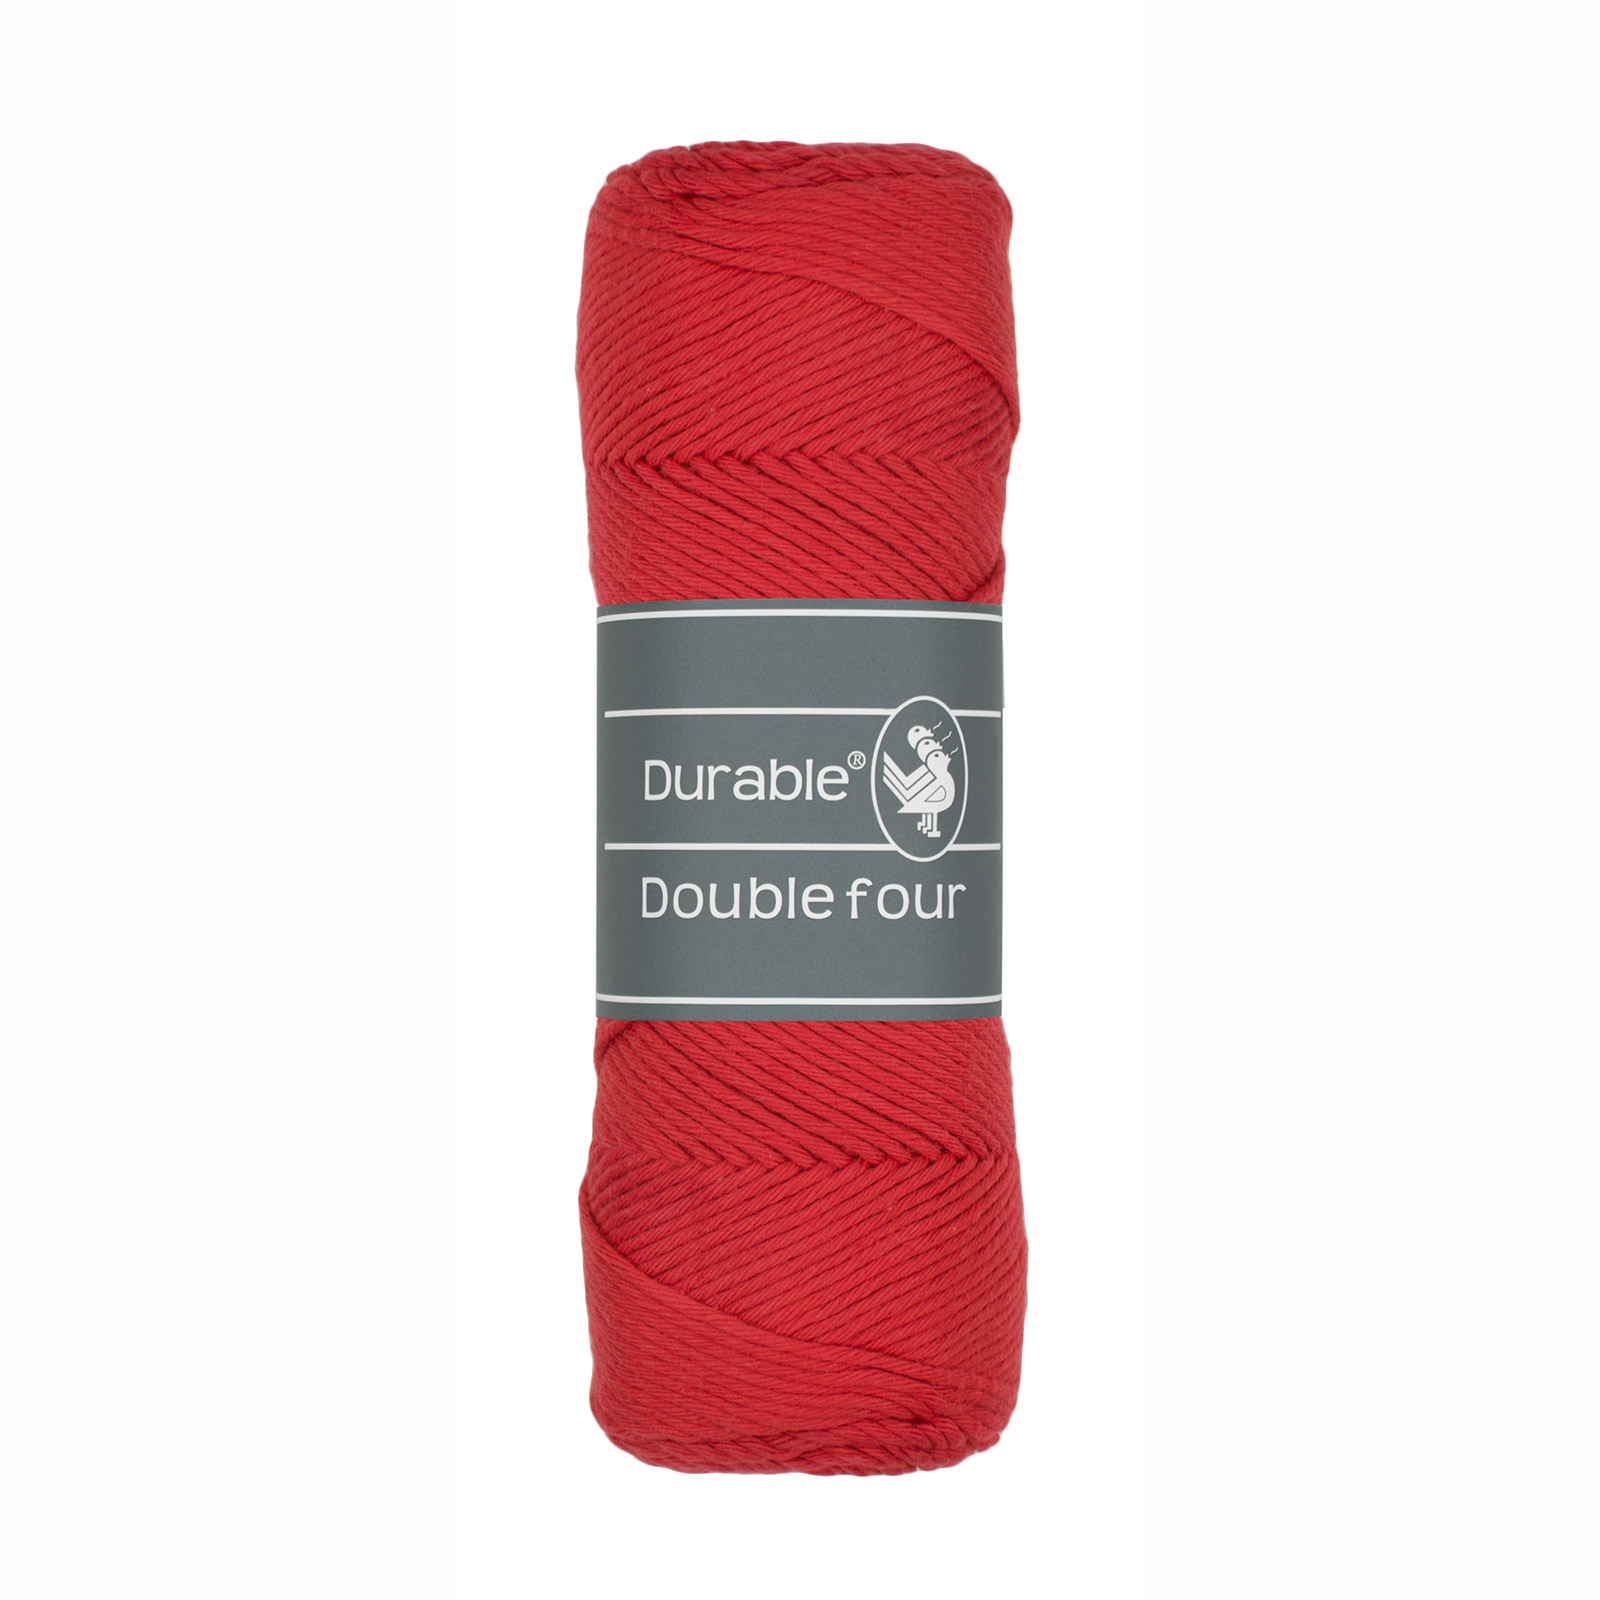 Durable Double Four – 316 Red